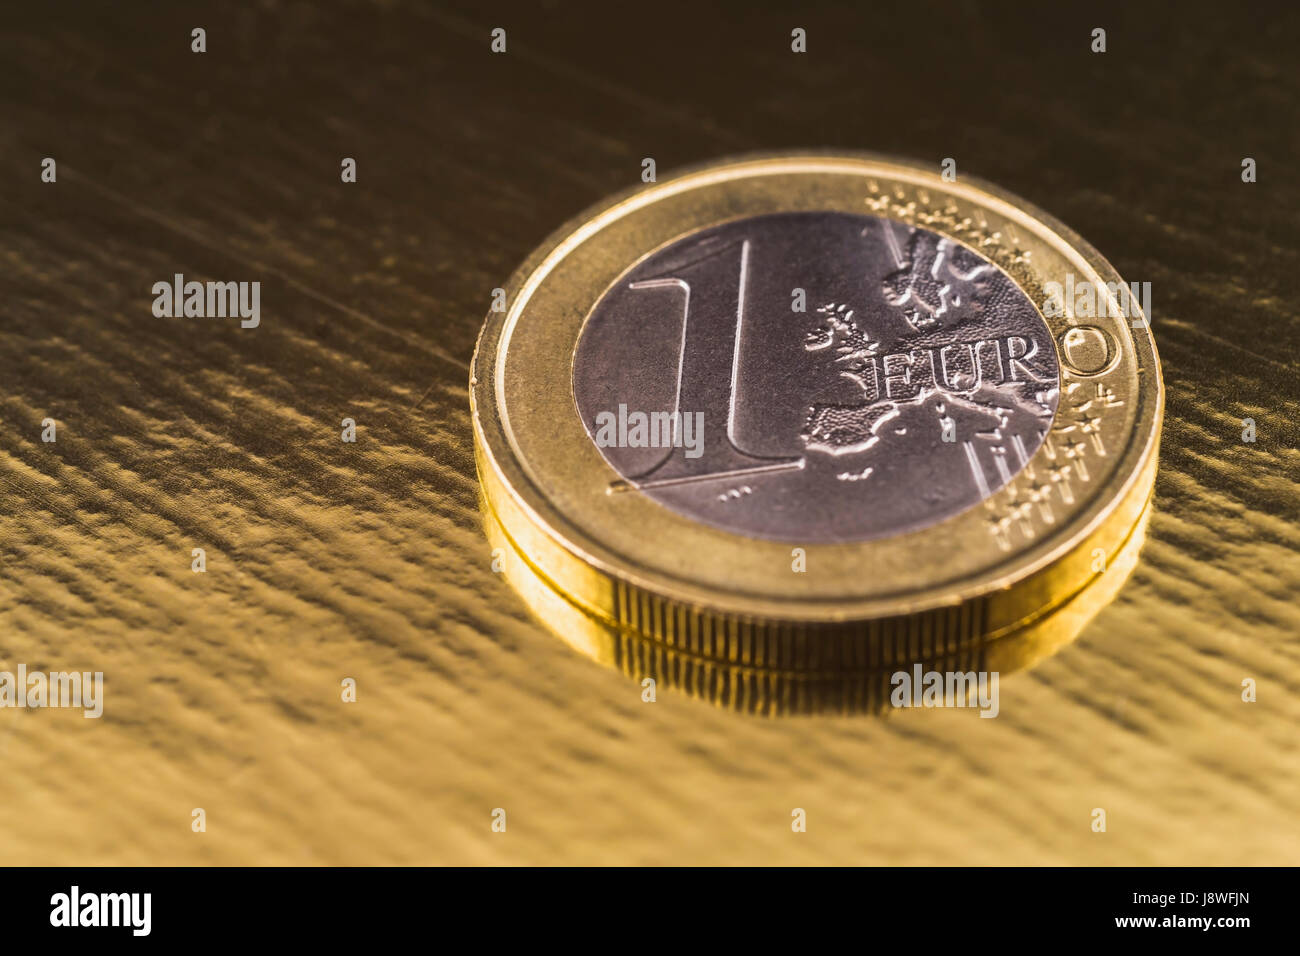 One Euro coin on gold background - Stock Image